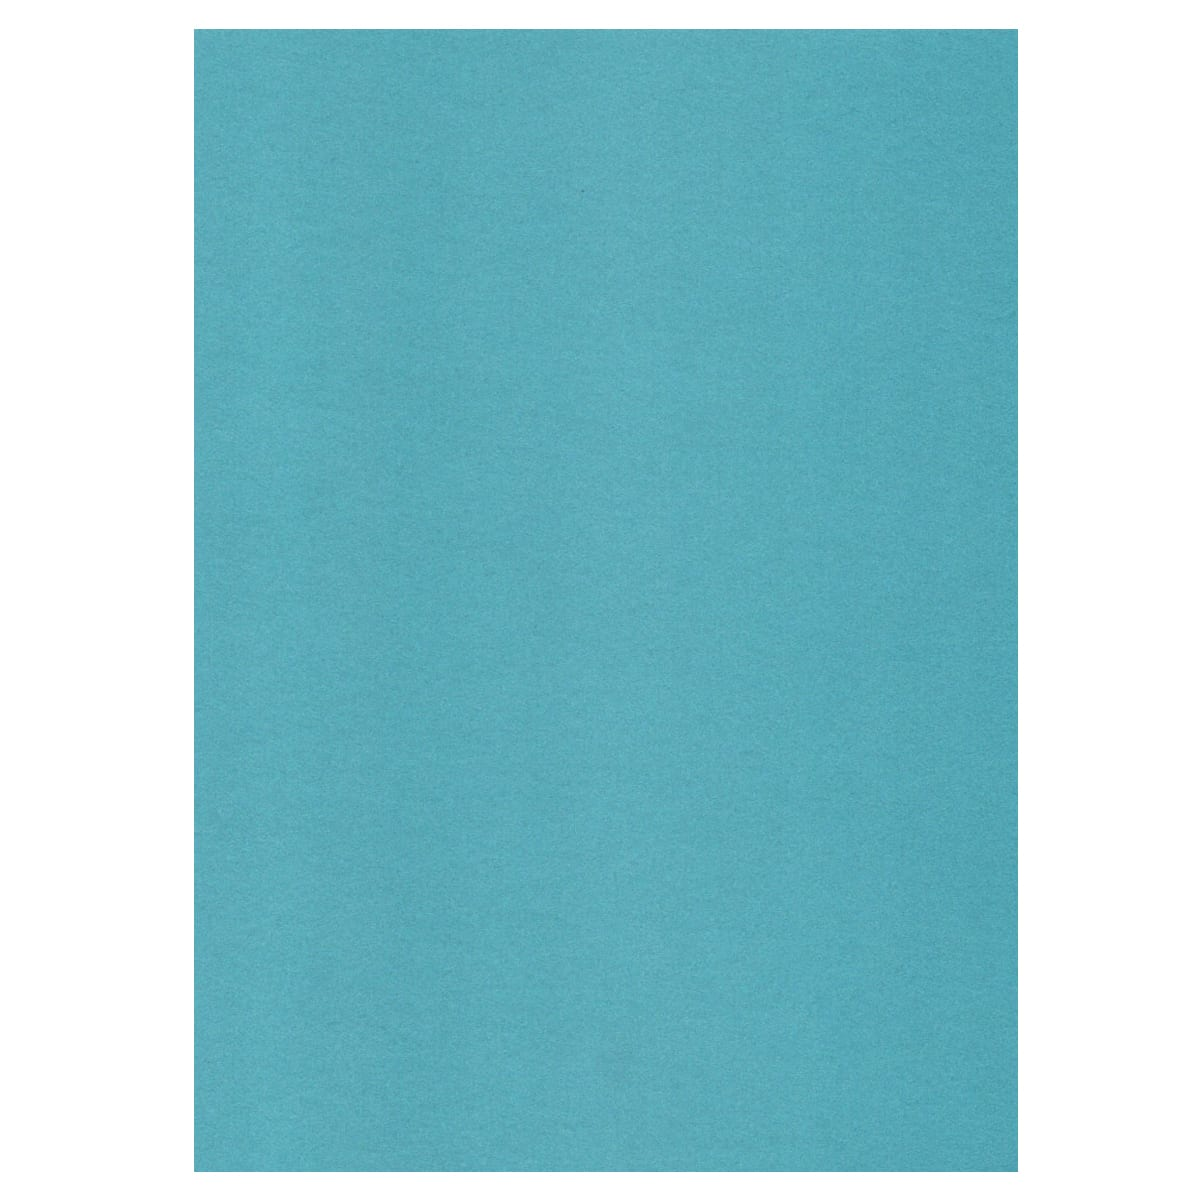 A3 PEARLESCENT TURQUOISE CARD